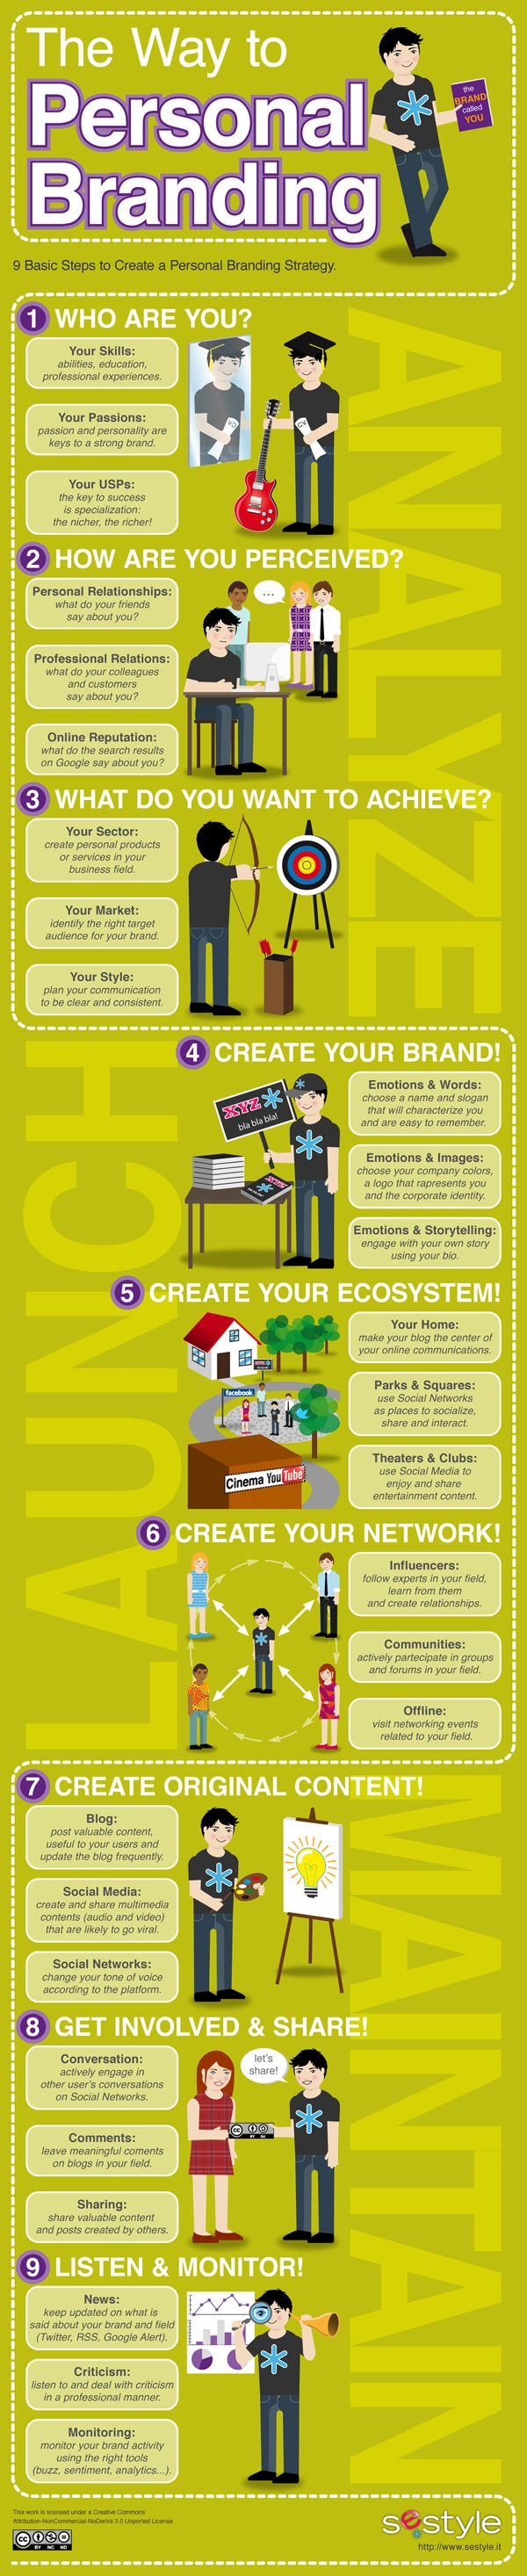 The Way to Personal Branding #Infographic Created by sestyle